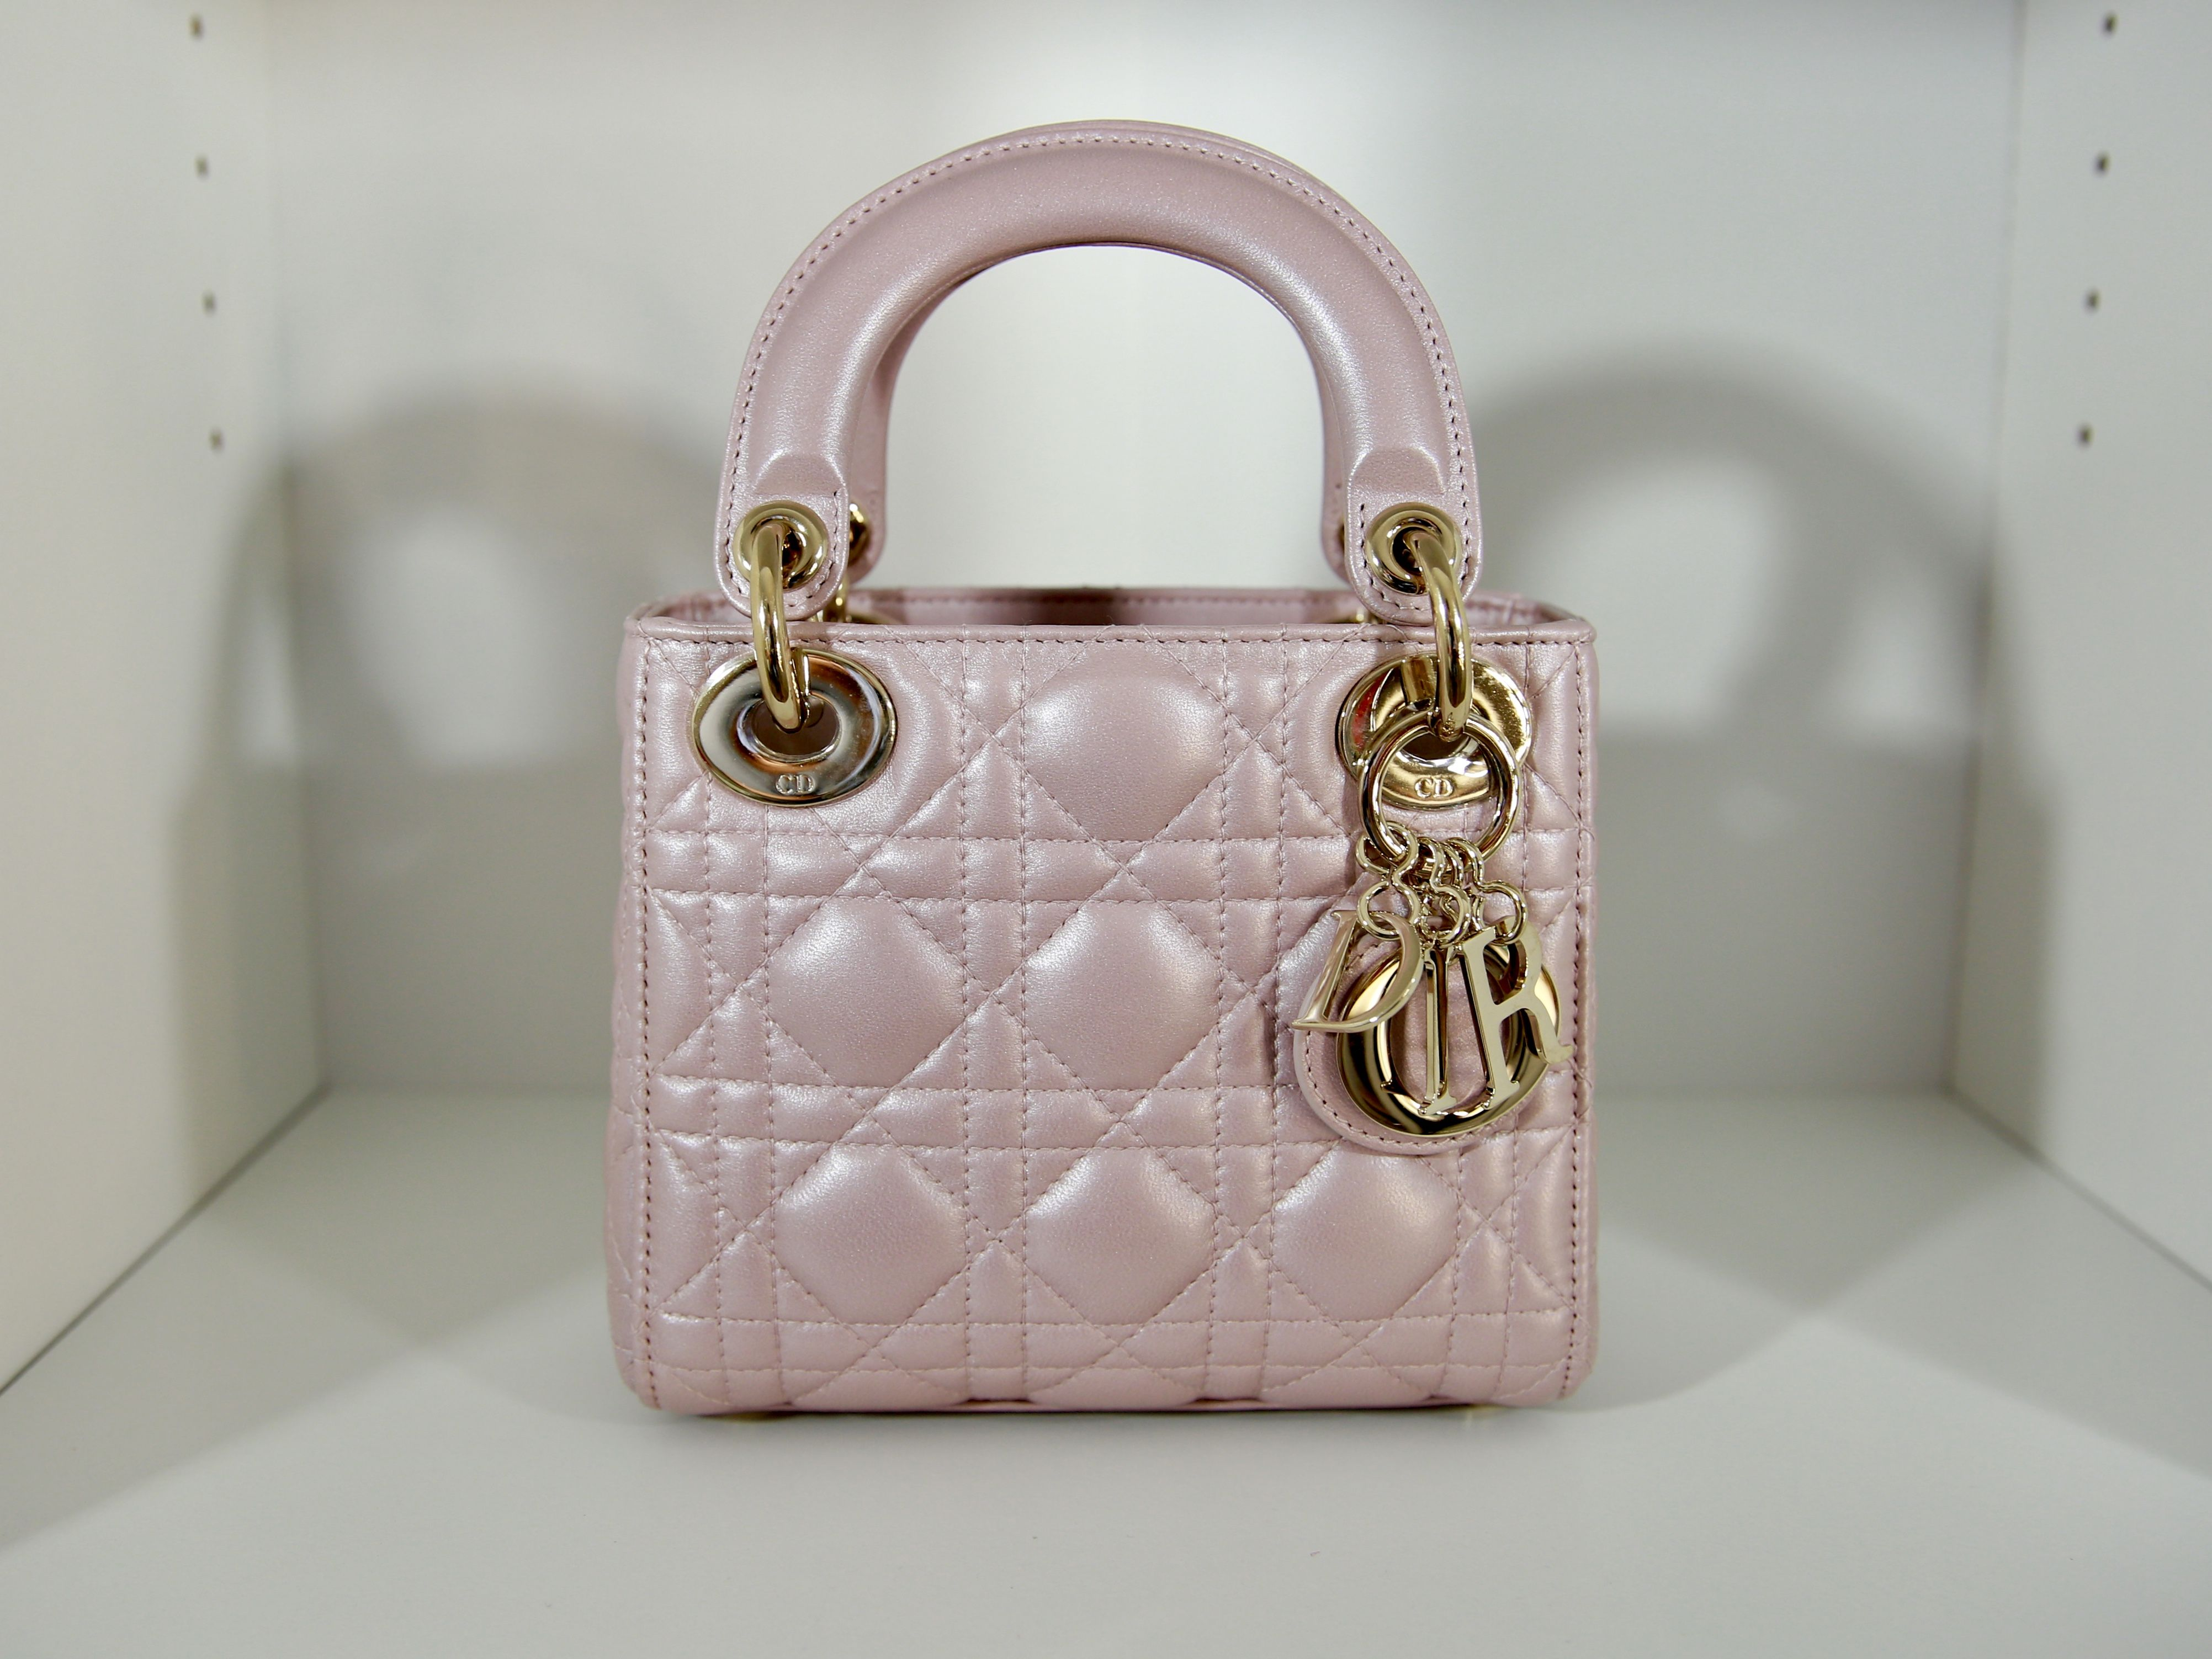 5d0b8ed4832d Lady Dior Mini in pearly lambskin in pink rose gold color https